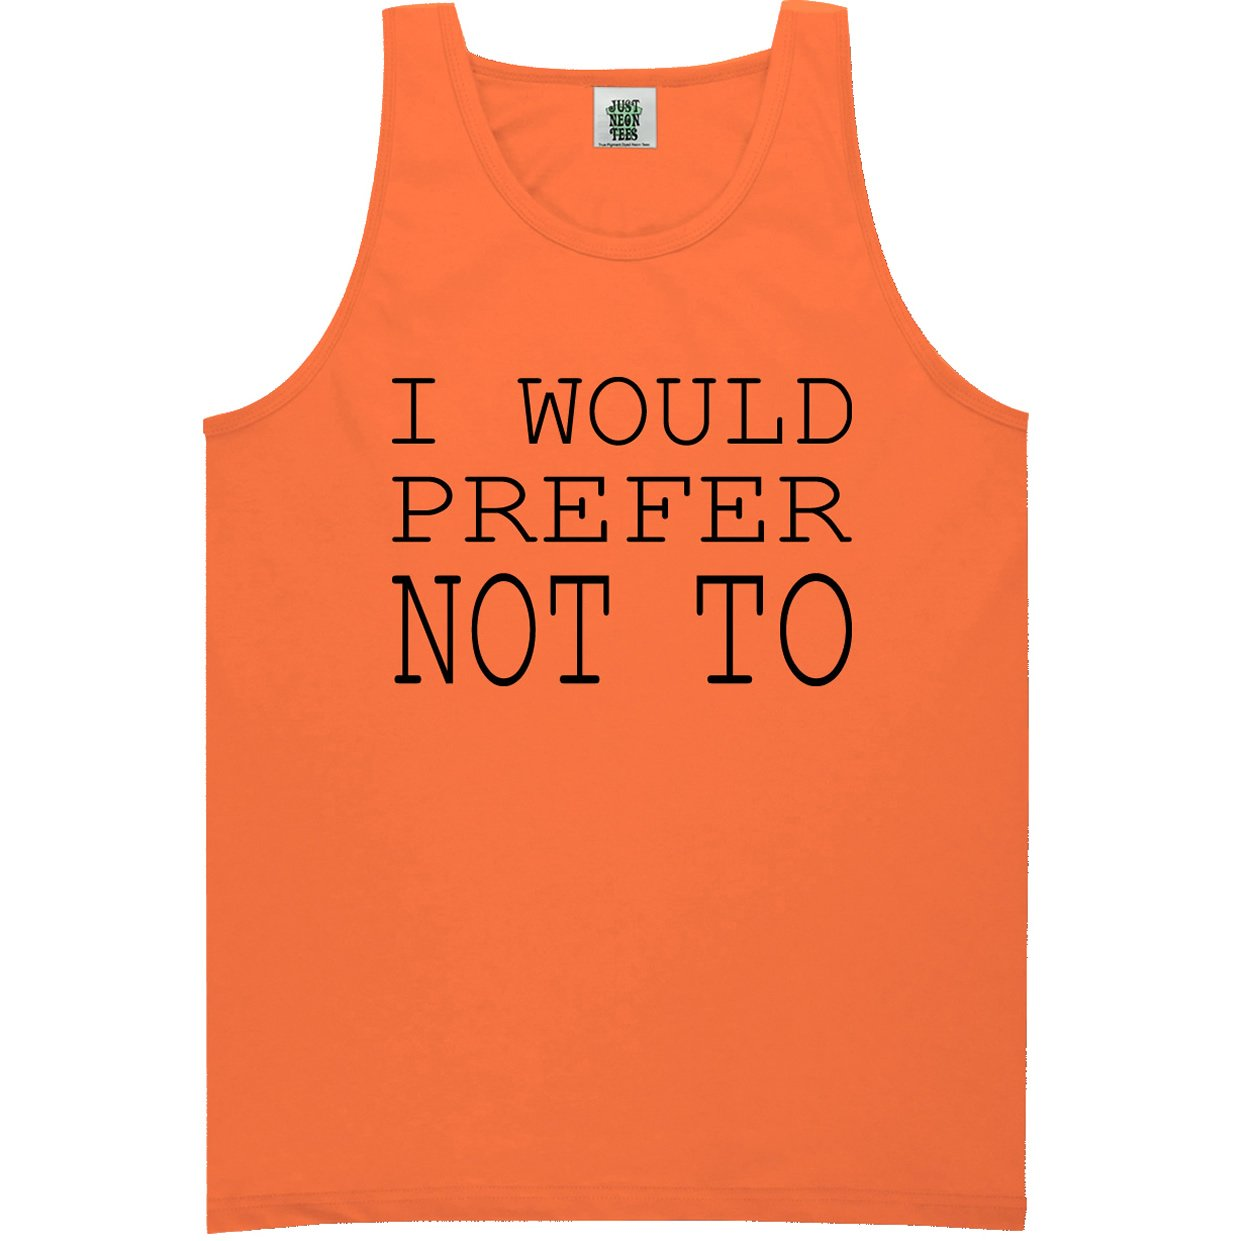 Youth I Would Prefer Not to Bright Neon Tank Top 6 Bright Colors